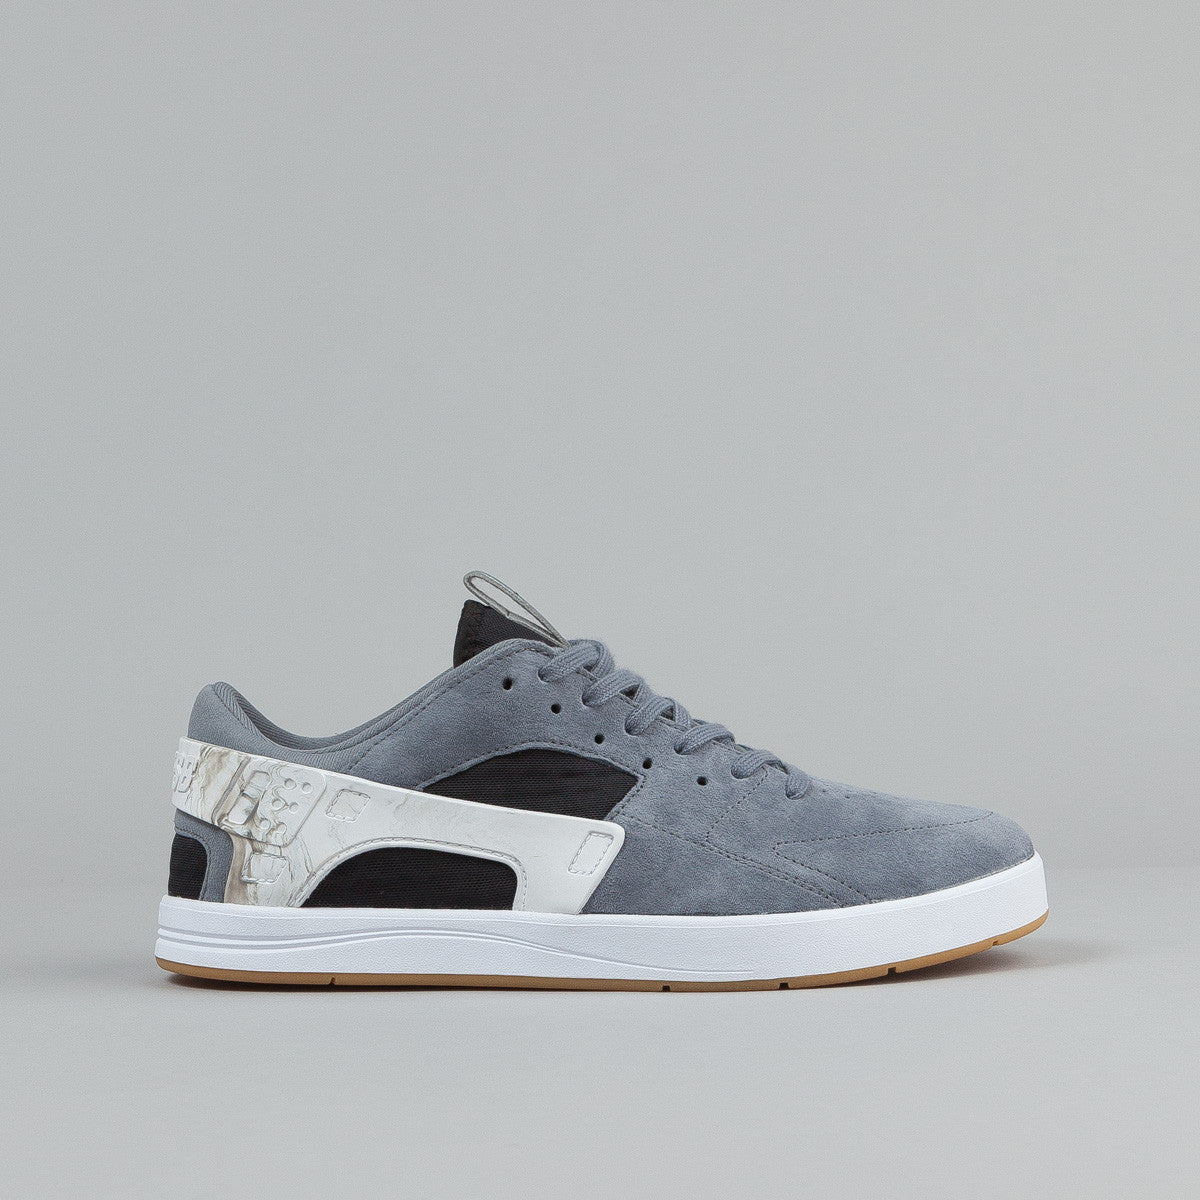 Nike SB Eric Koston Huarache Shoes